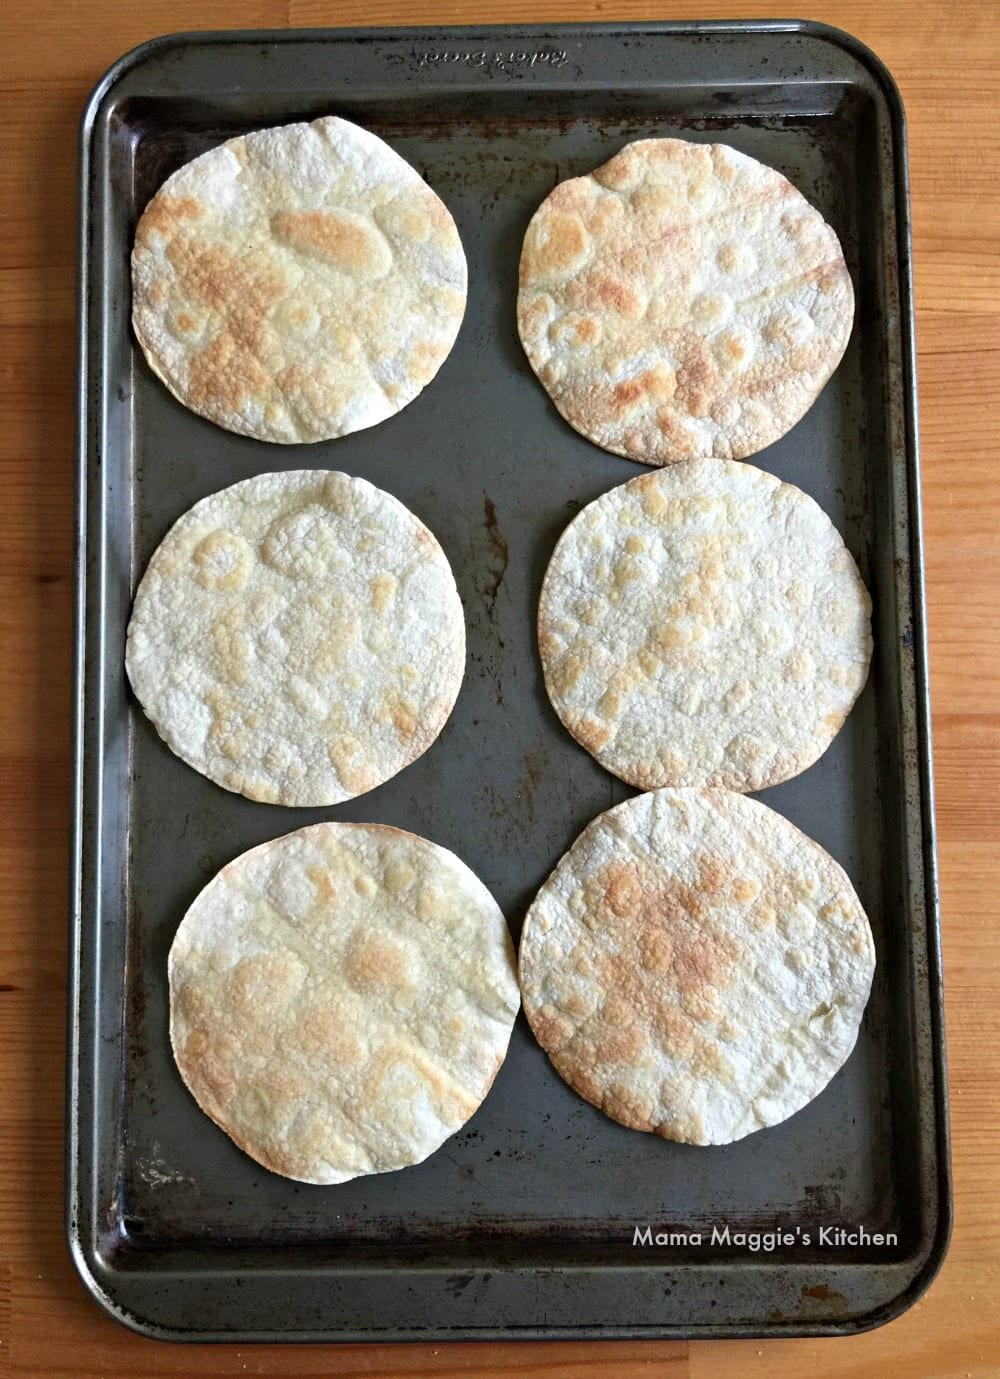 Corn tortillas baking on a cookie sheet.